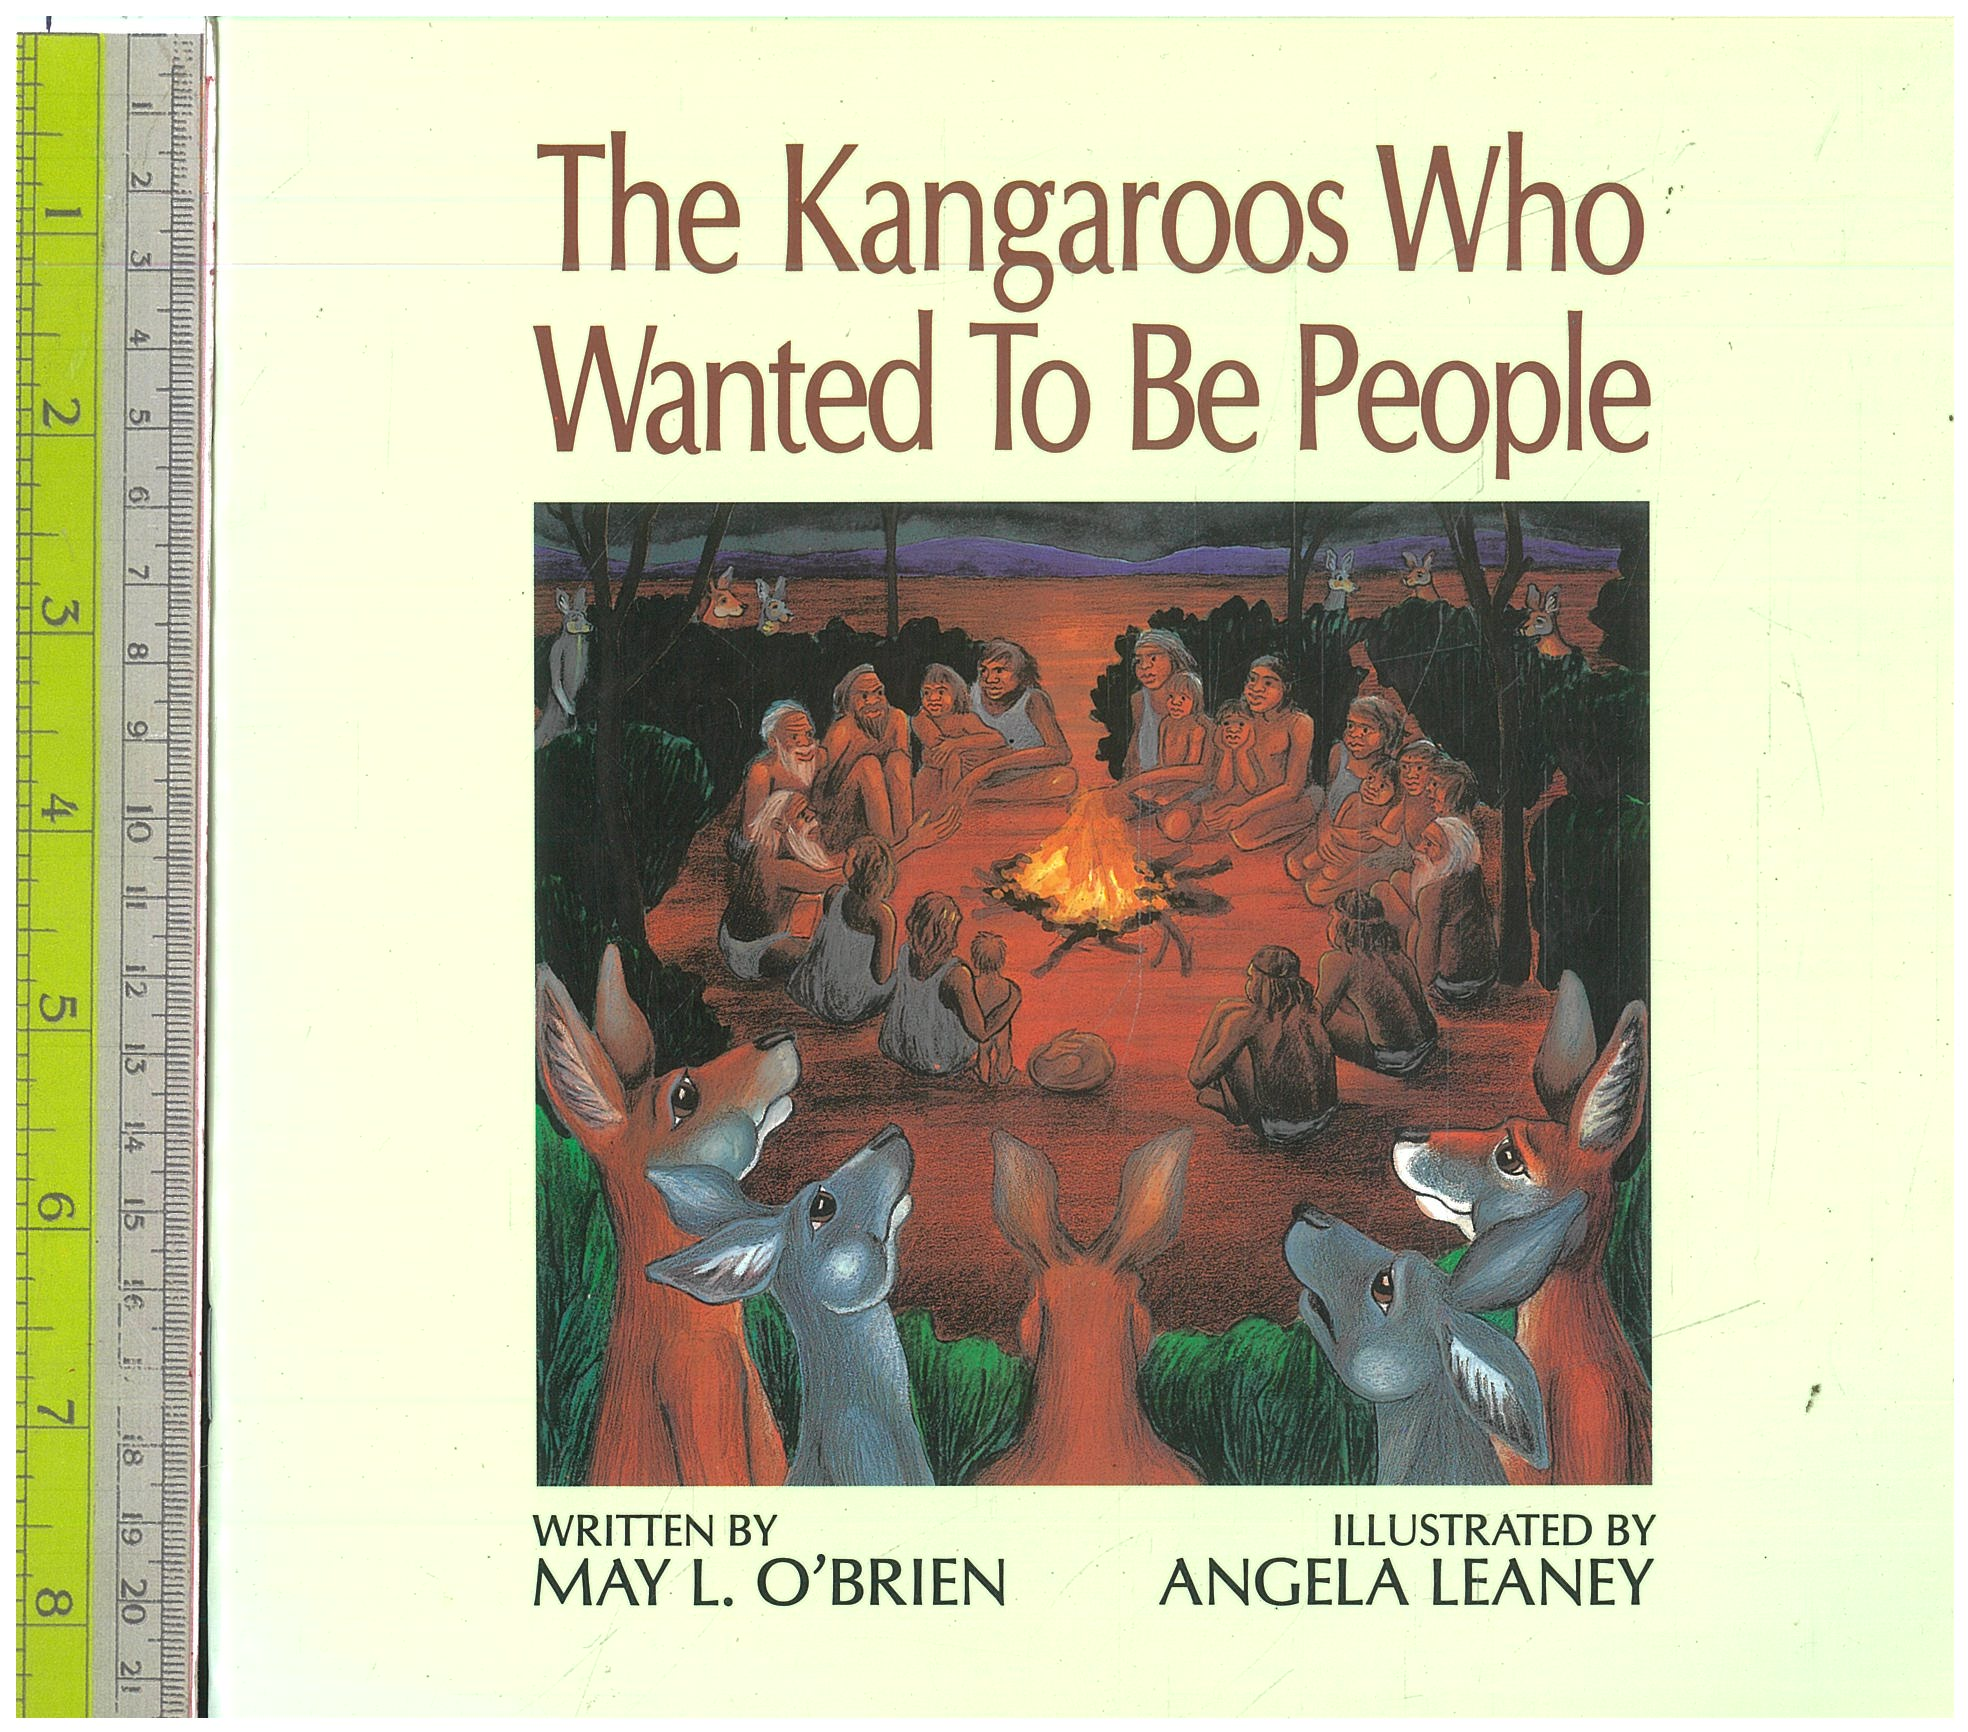 Kangaroos who wanted to be people